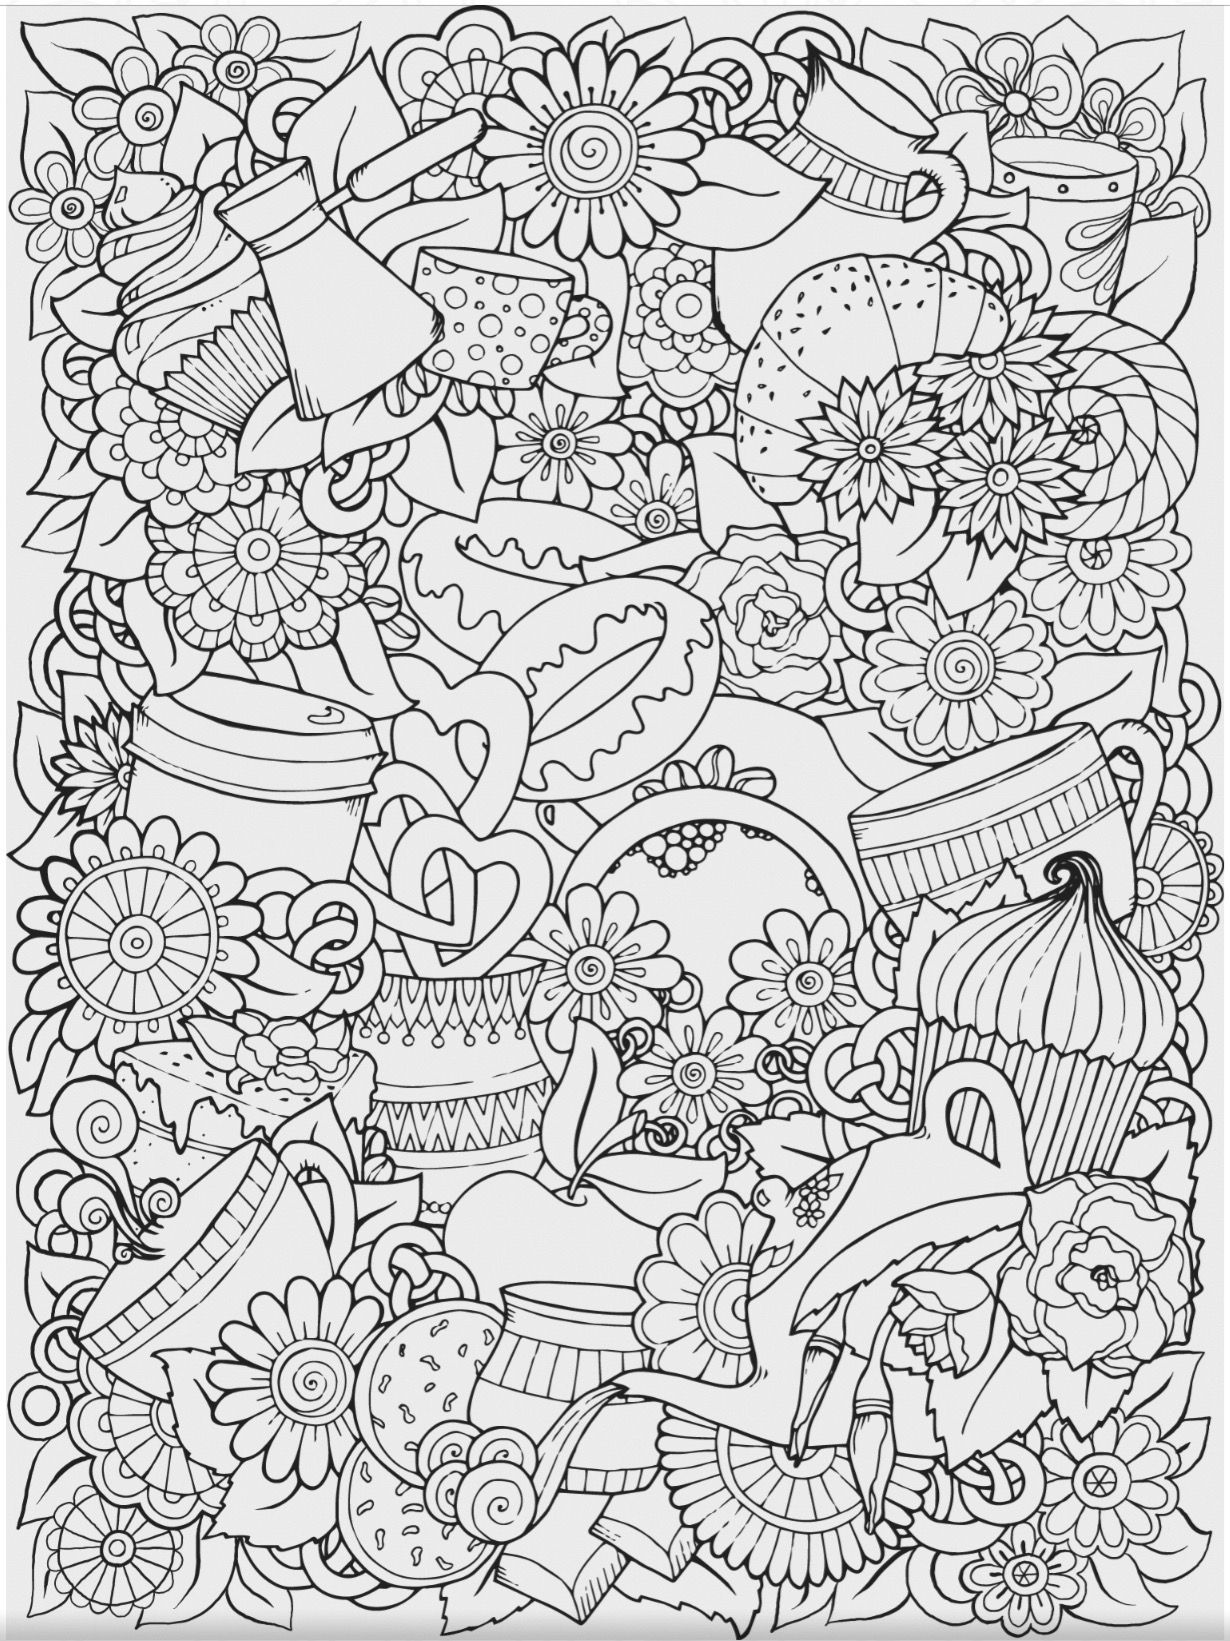 Pin by Carol Ratliff on Coloring